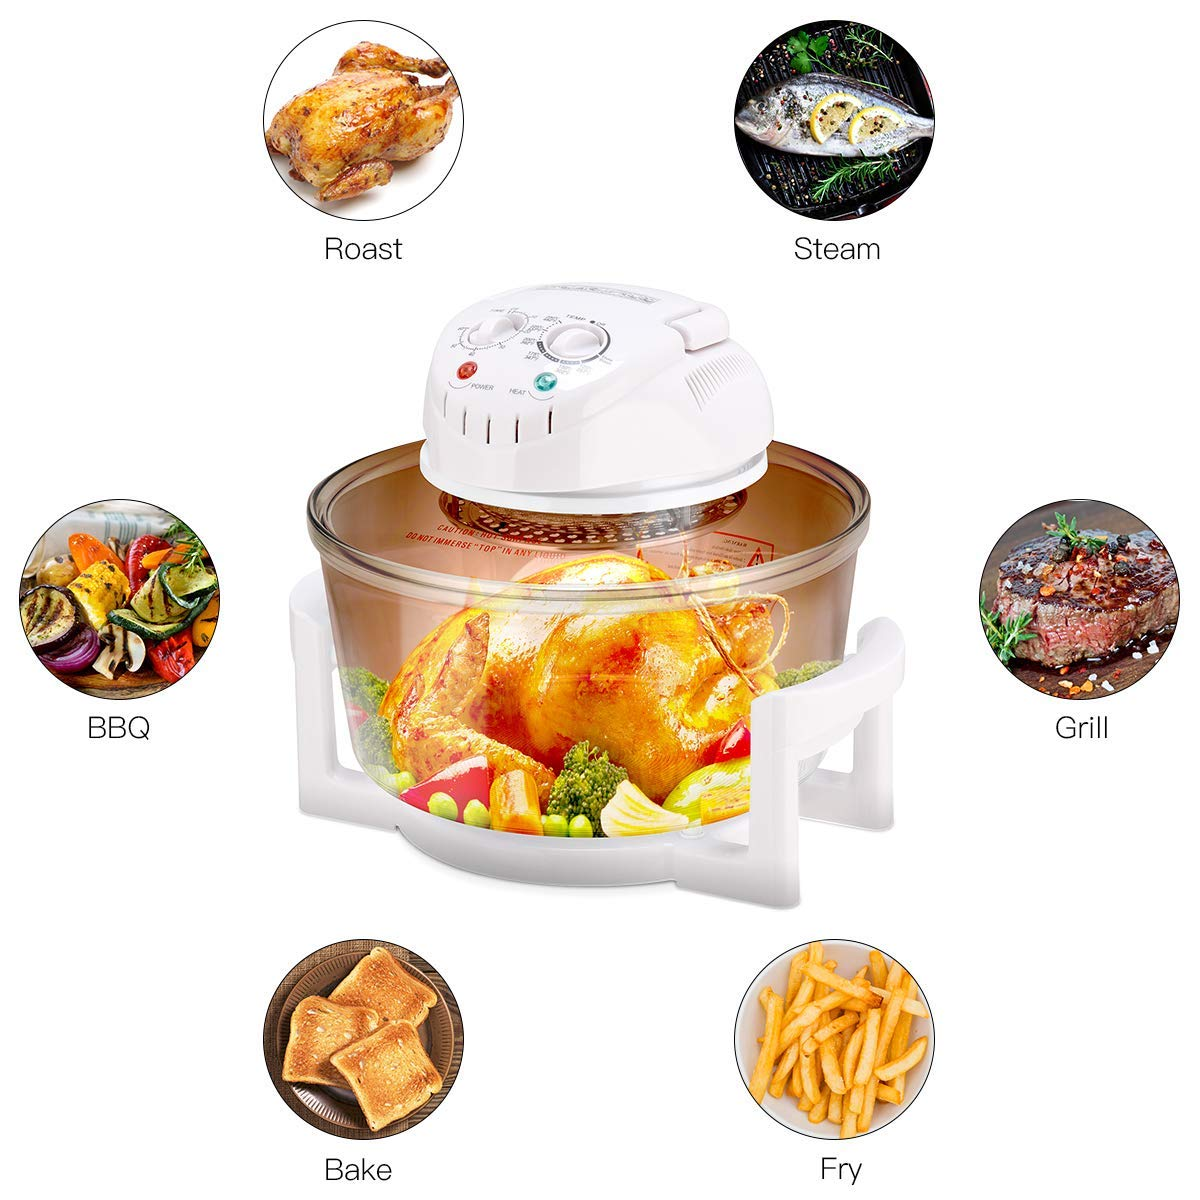 ReunionG Infrared Halogen Convection Turbo Oven Cooker Glass Bowl Healthy Low Fat Cooking Oven with Stainless Steel Extender Ring